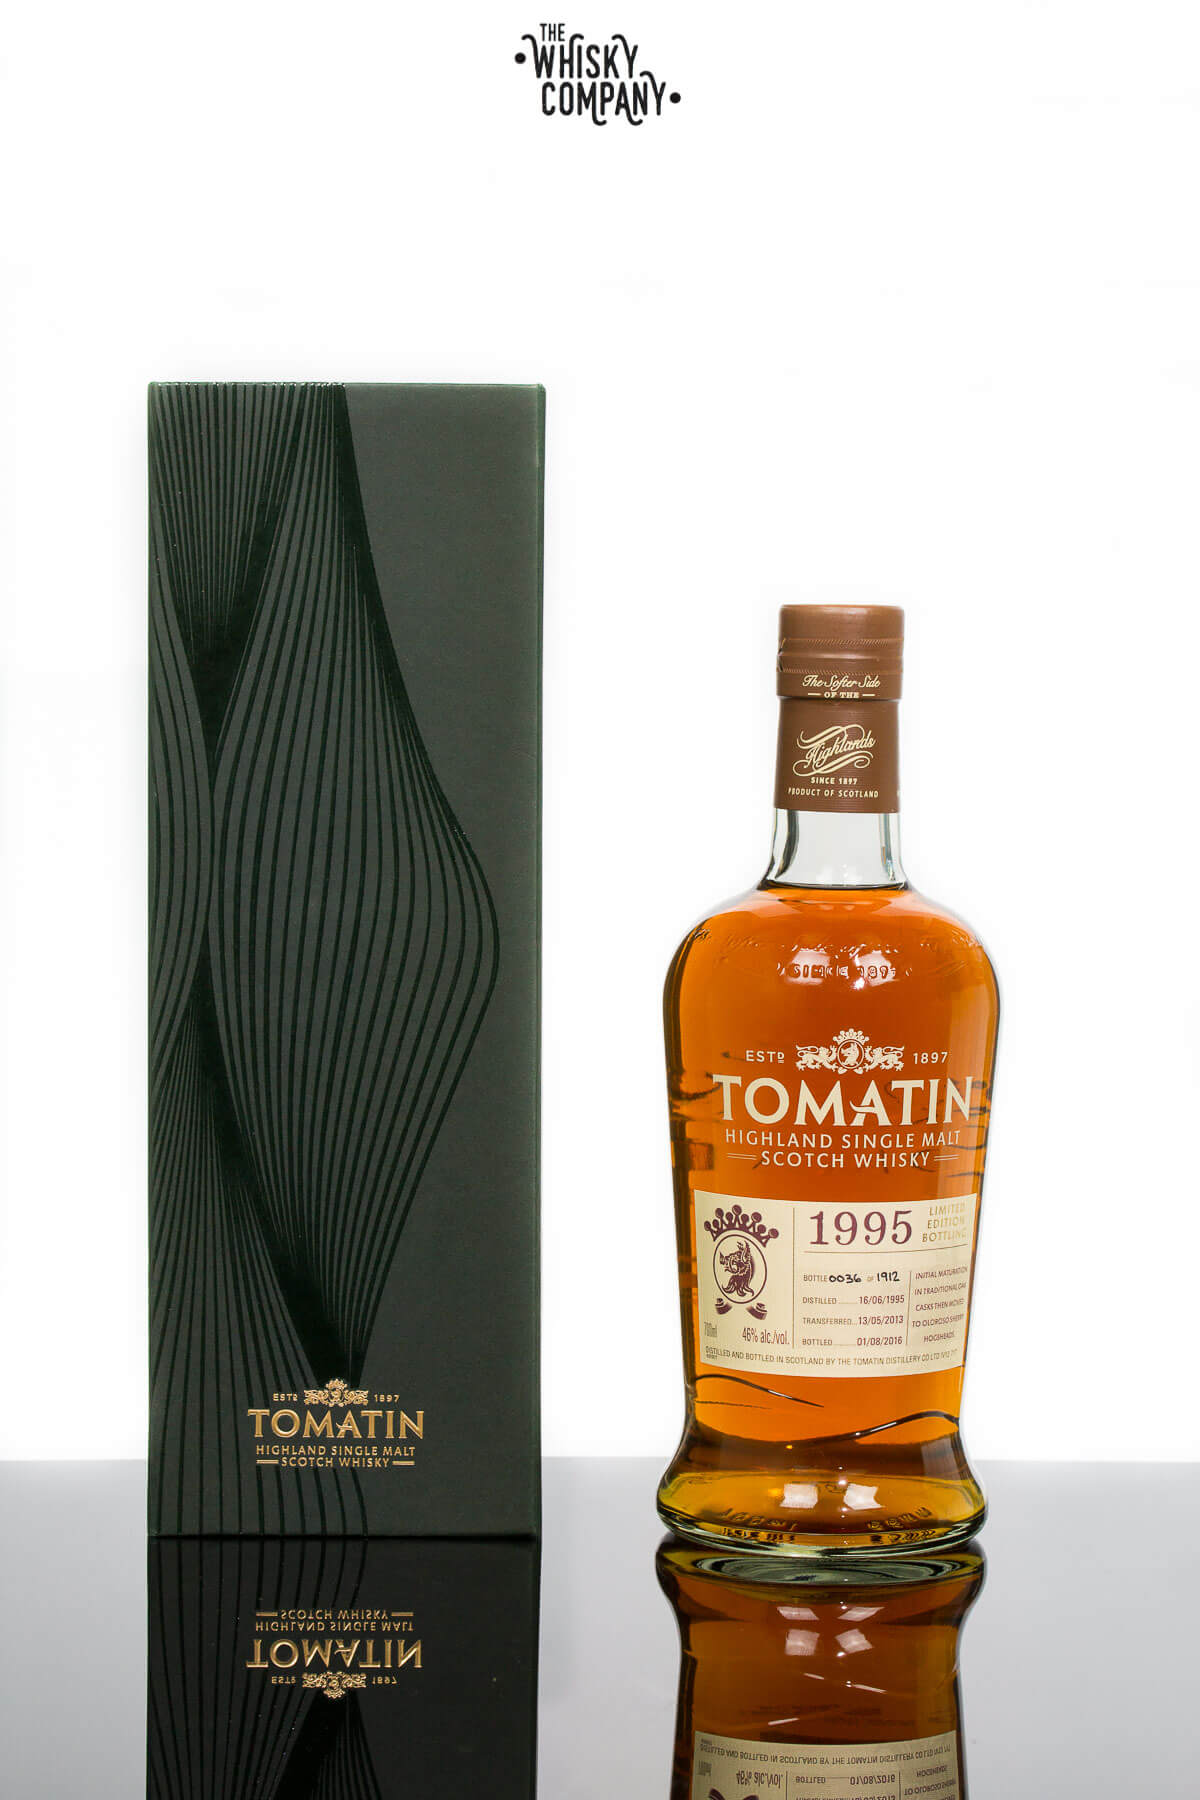 Tomatin 1995 Vintage 21 Years Old Highland Single Malt Scotch Whisky